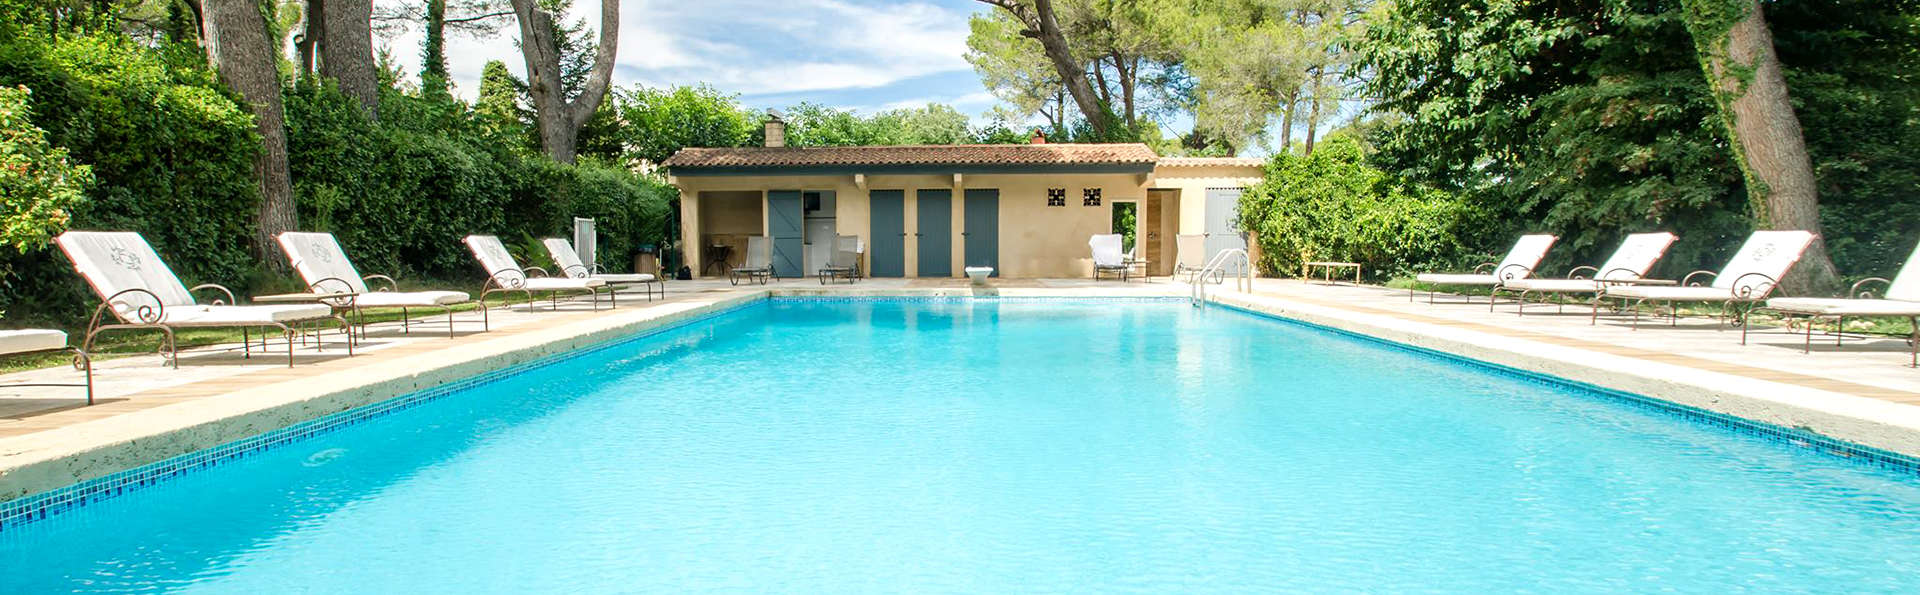 Auberge de Noves - Edit_Pool2.jpg